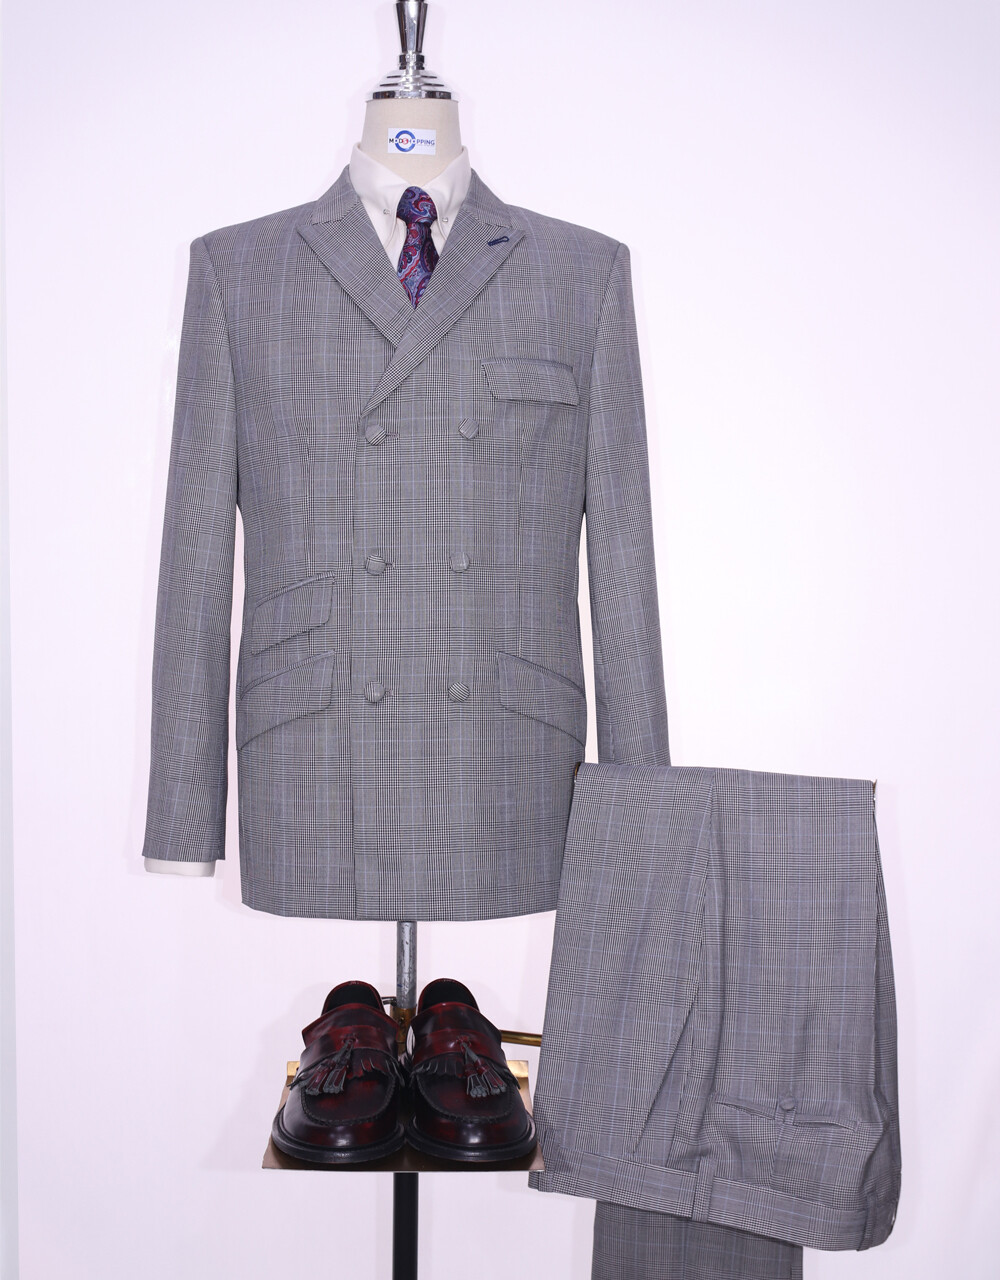 Double Breasted Suit   Grey Prince Of Wales Check  Suit 60s Style